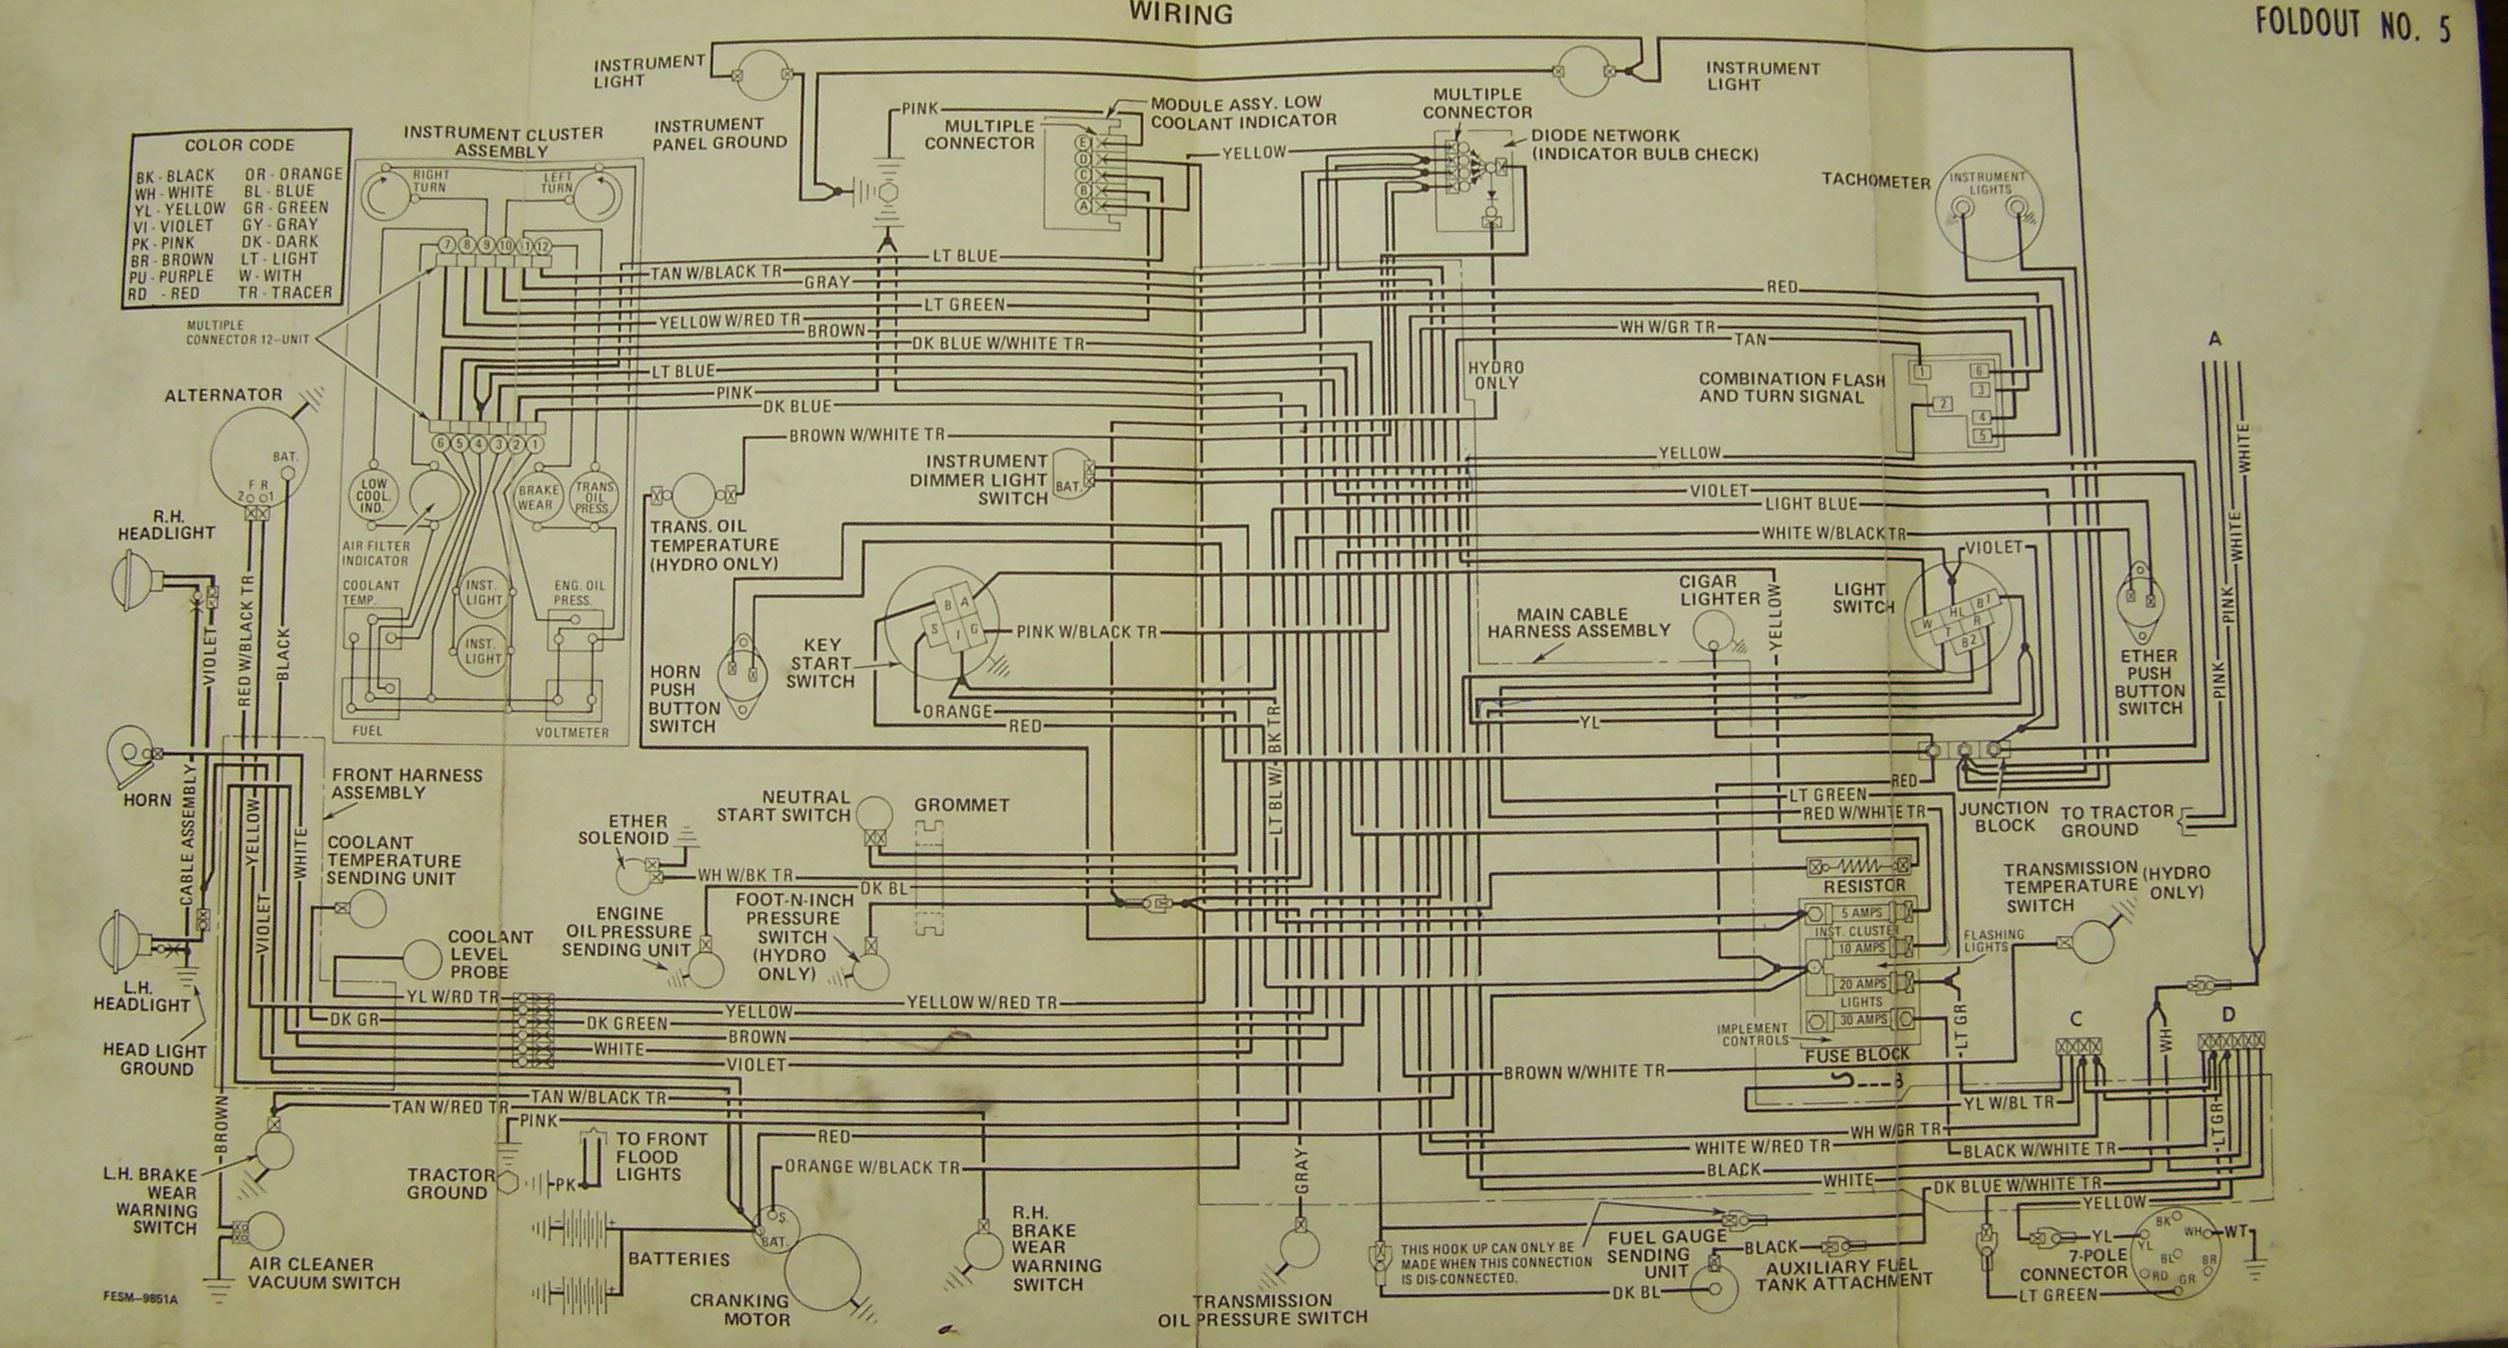 carter gruenewald co inc ih farmall tractor electrical wiring rh cngco com Ford 4000 Tractor Electrical Diagram Massey Ferguson Tractor Parts Diagram